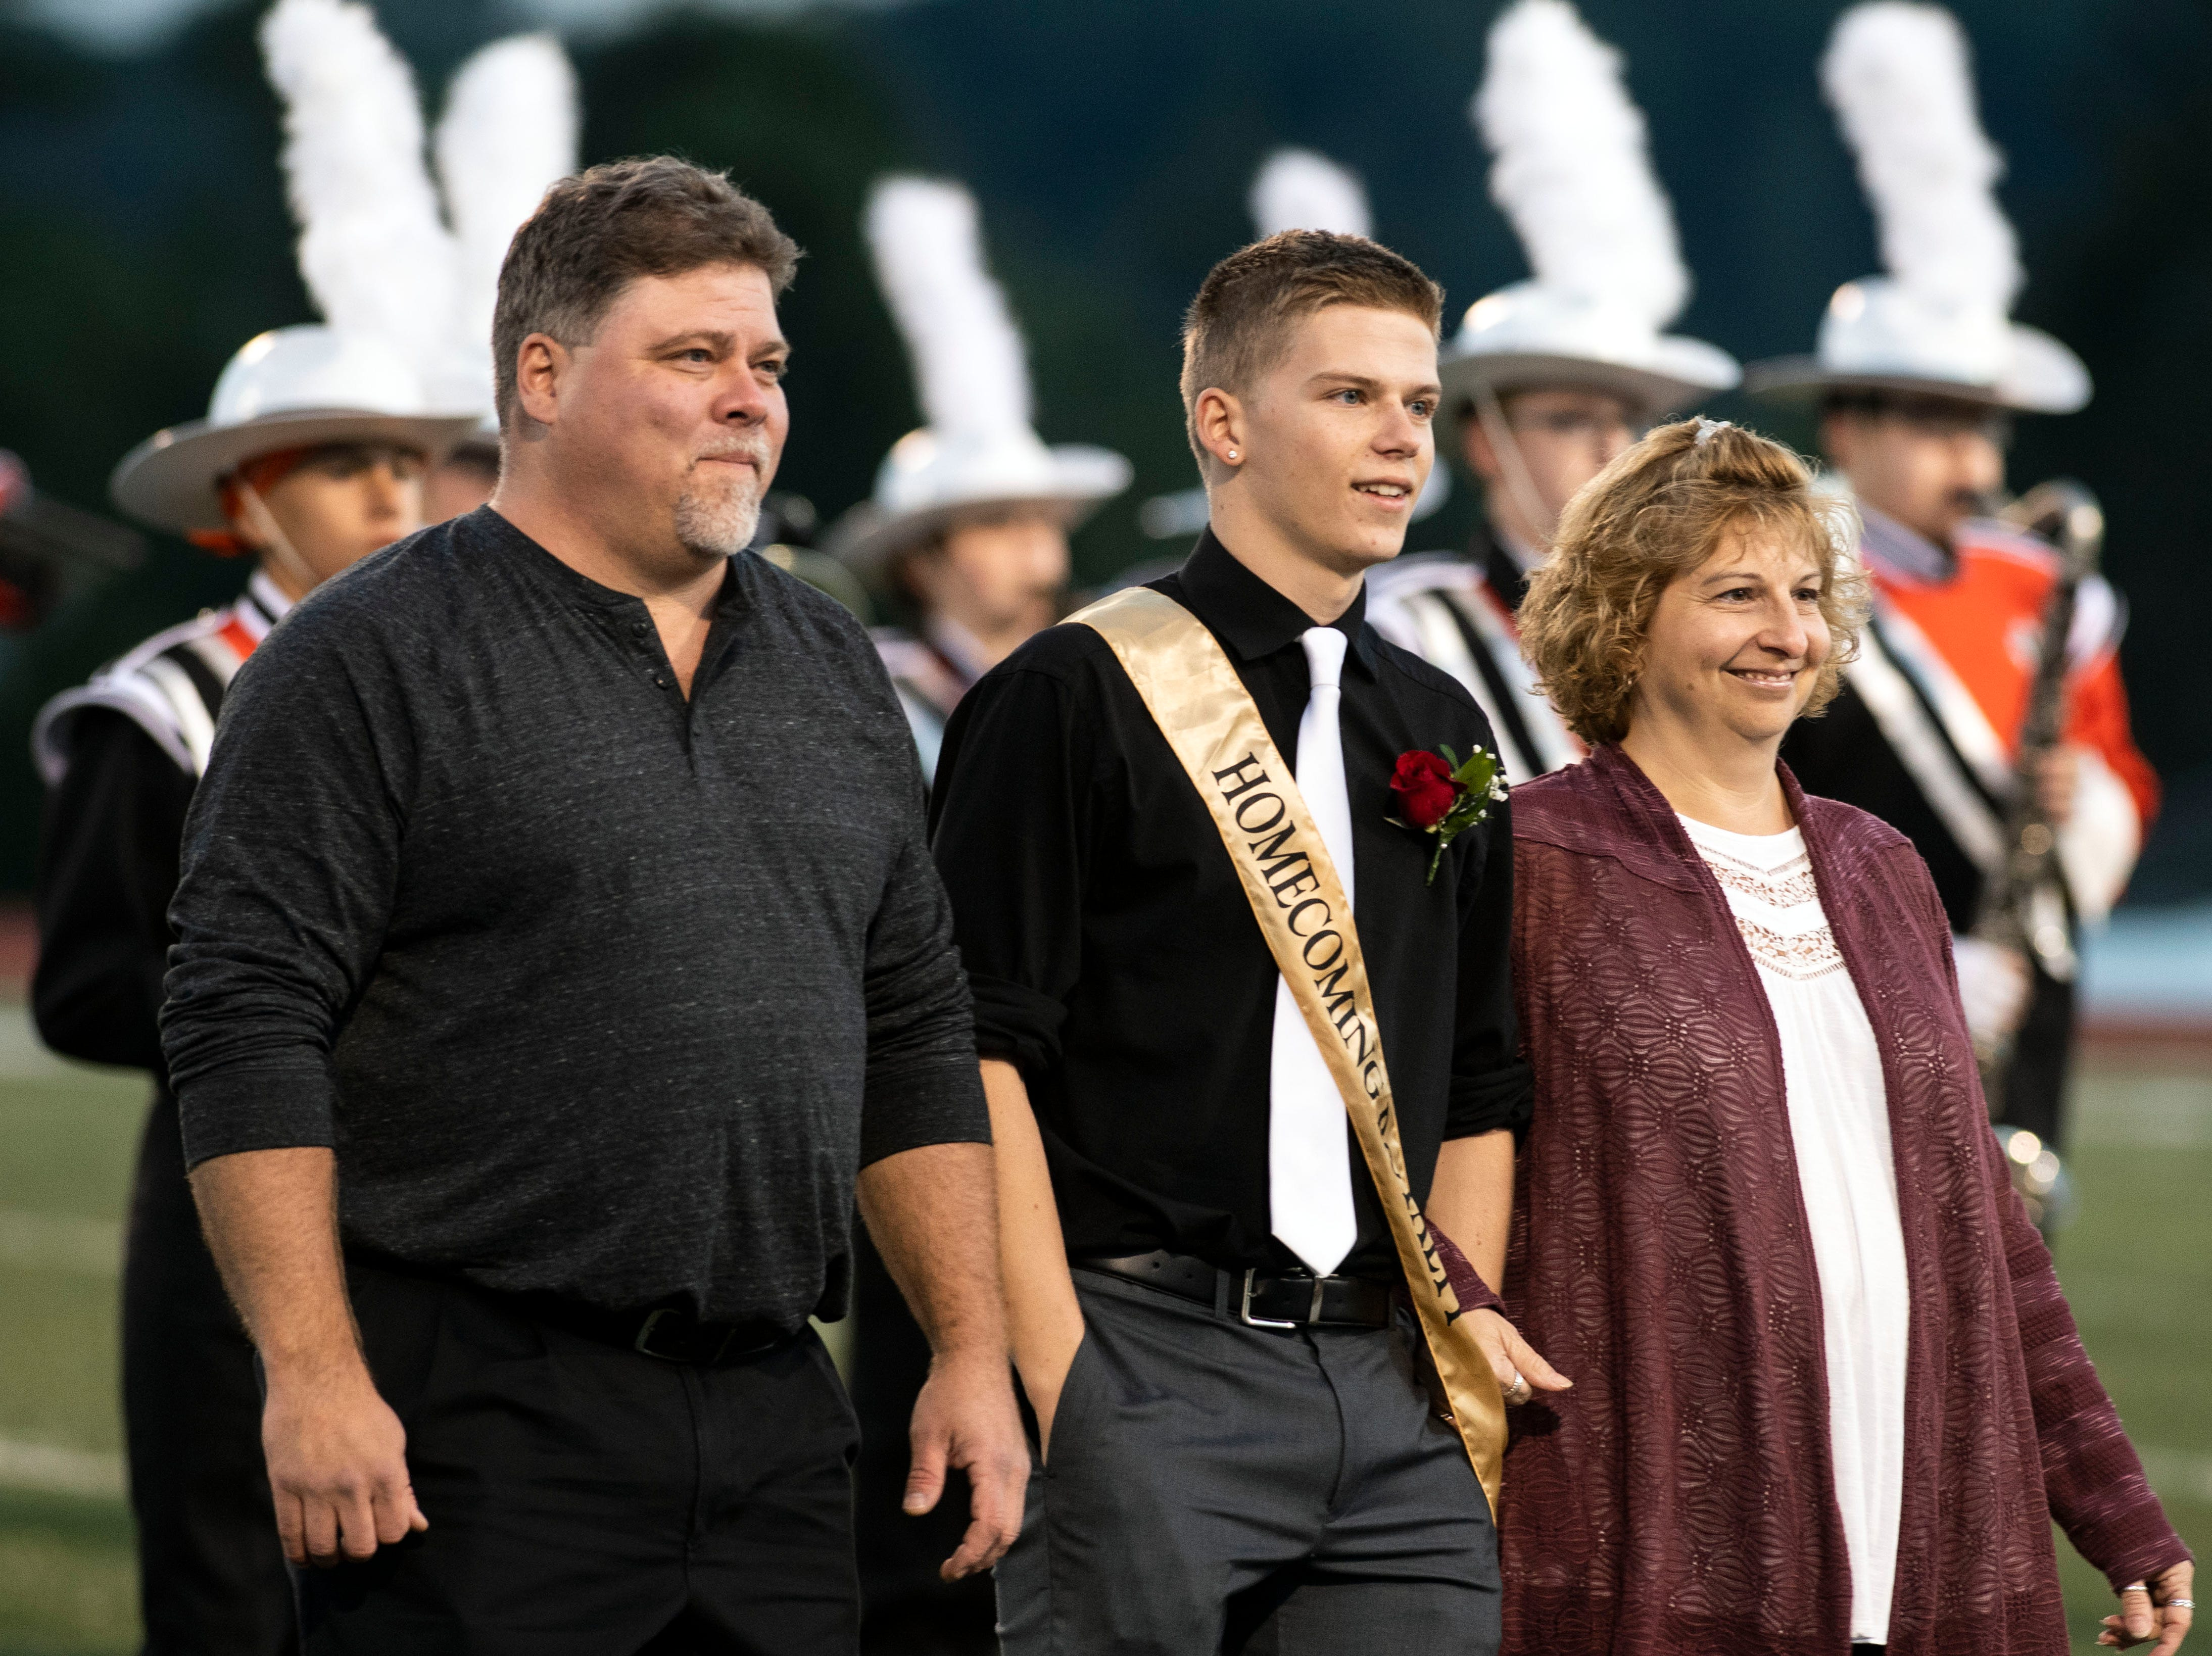 Members of Northeastern's homecoming court are escorted down the 50-yard line prior to a YAIAA Division I football game at Northeastern High School on Friday, Oct. 12, 2018. The Central York Panthers beat the Northeastern Bobcats, 44-7.